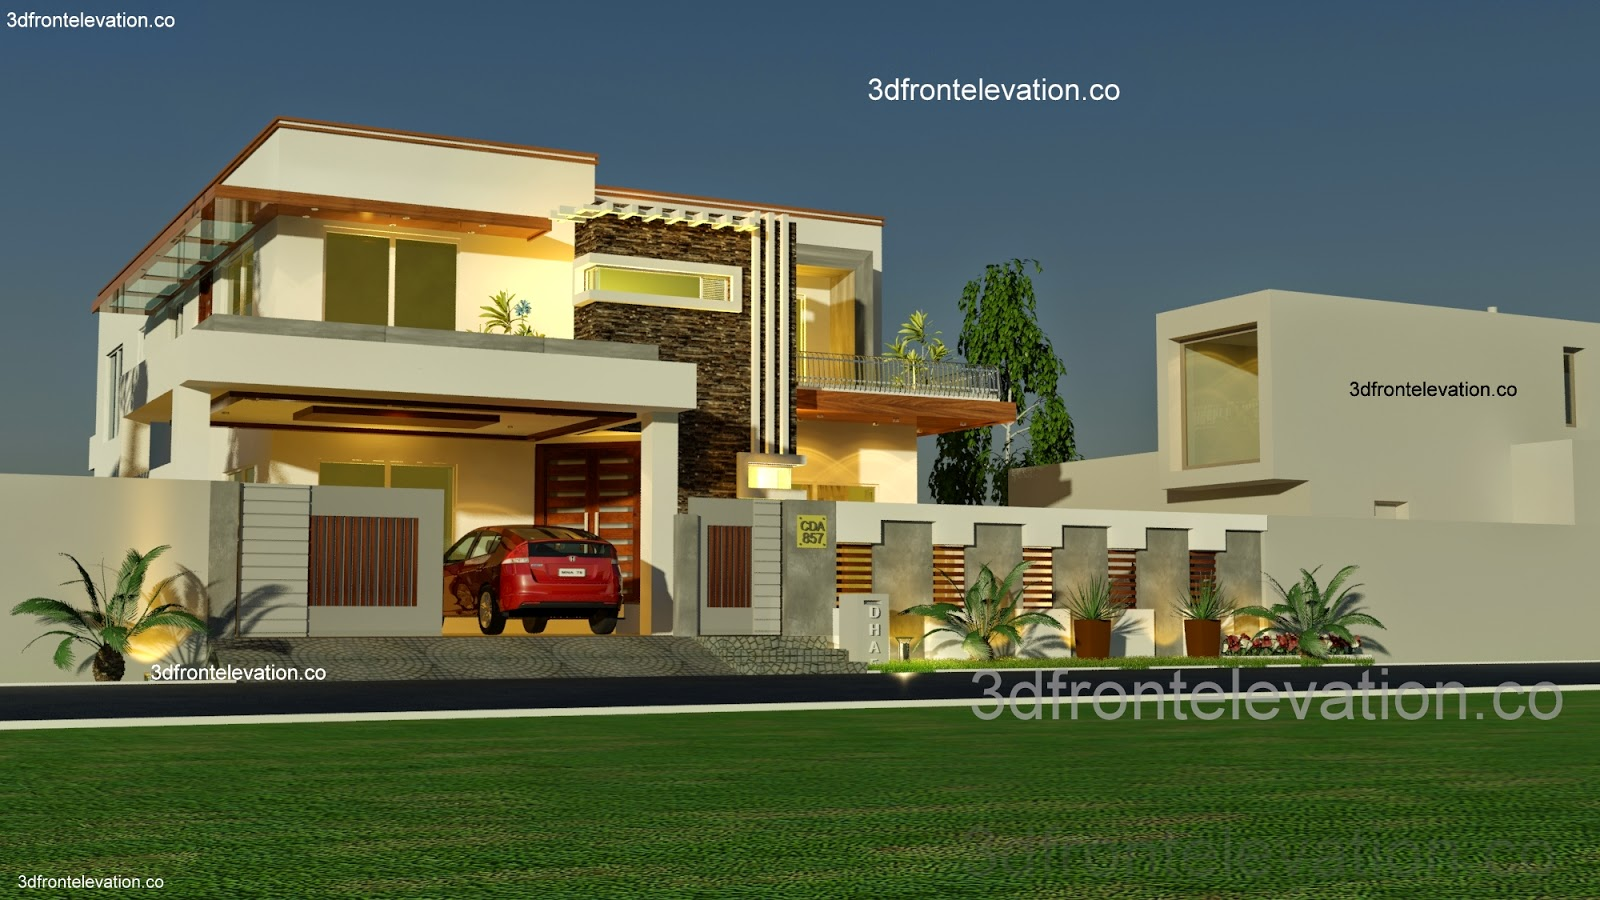 Front Elevation Houses Islamabad : D front elevation pakistan